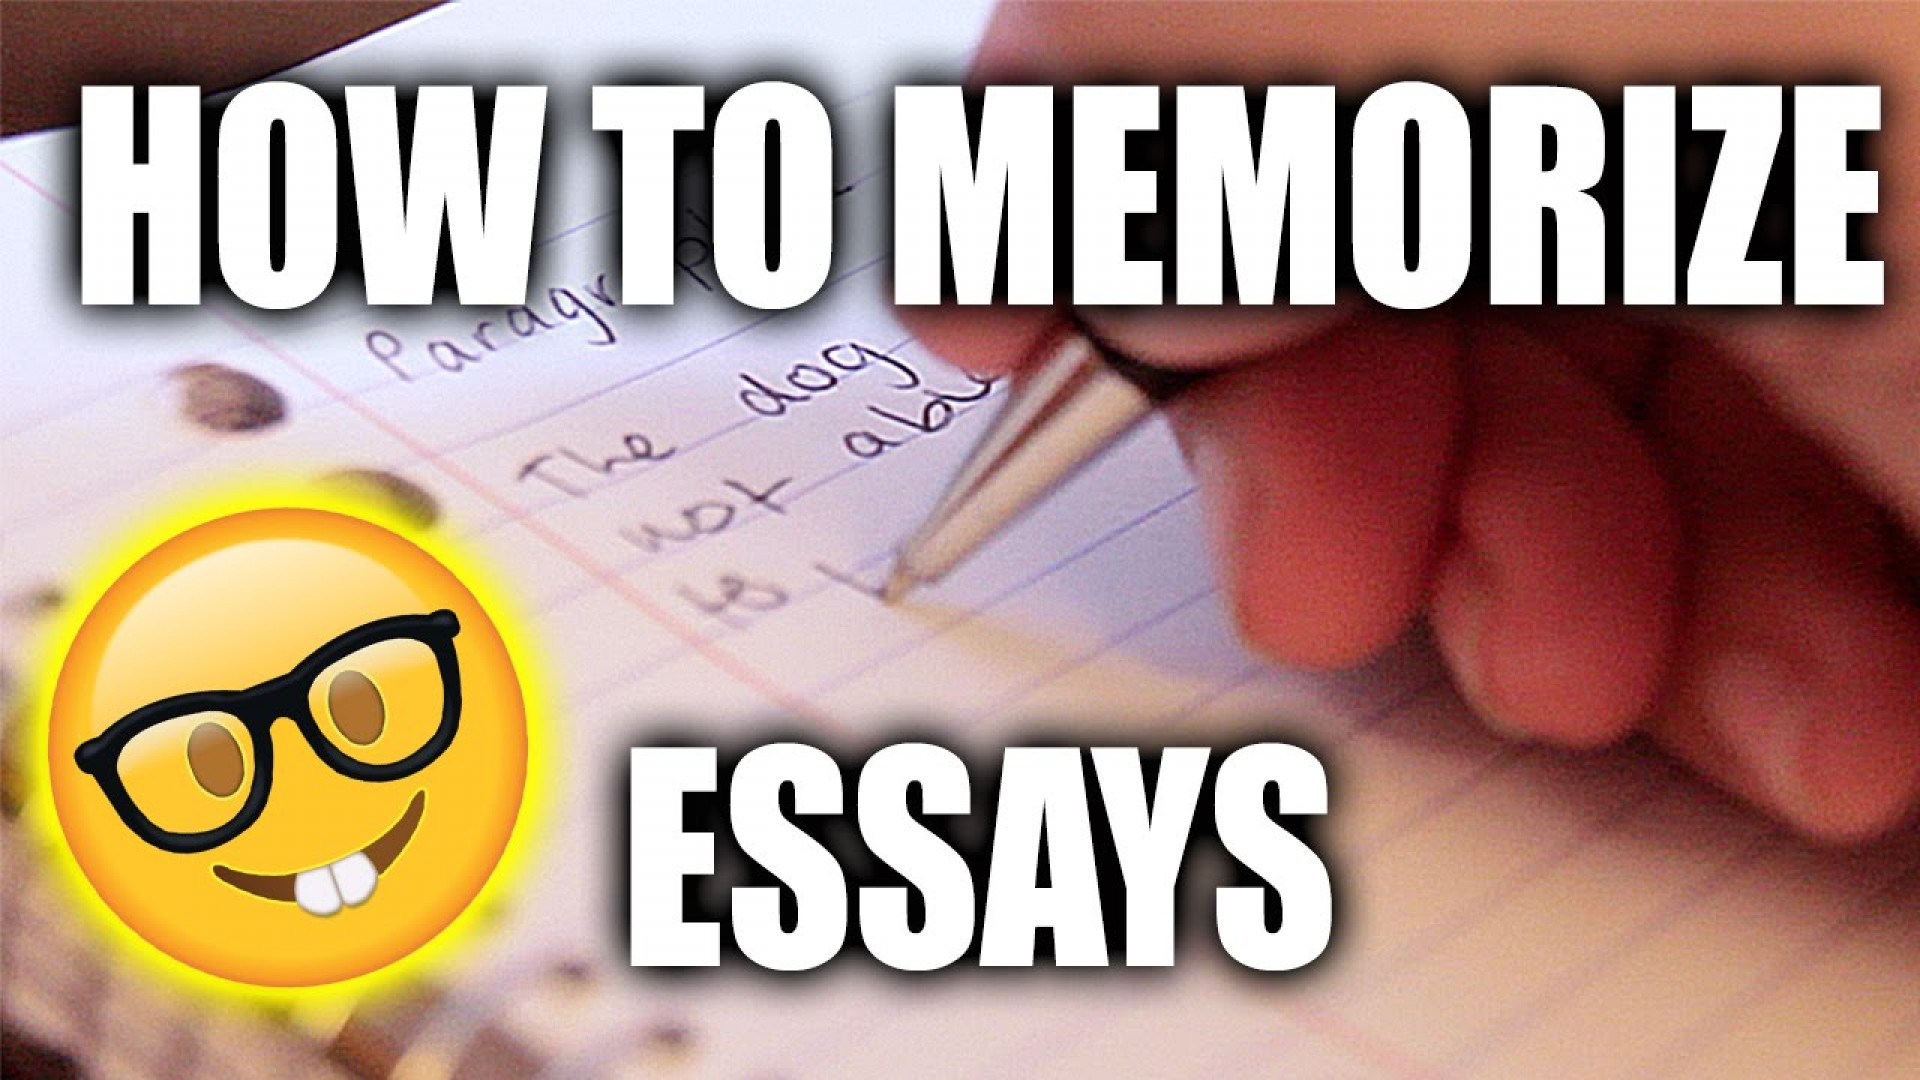 005 How To Memorise An Essay In Hour Example Unbelievable A Few Hours Remember 1 1920